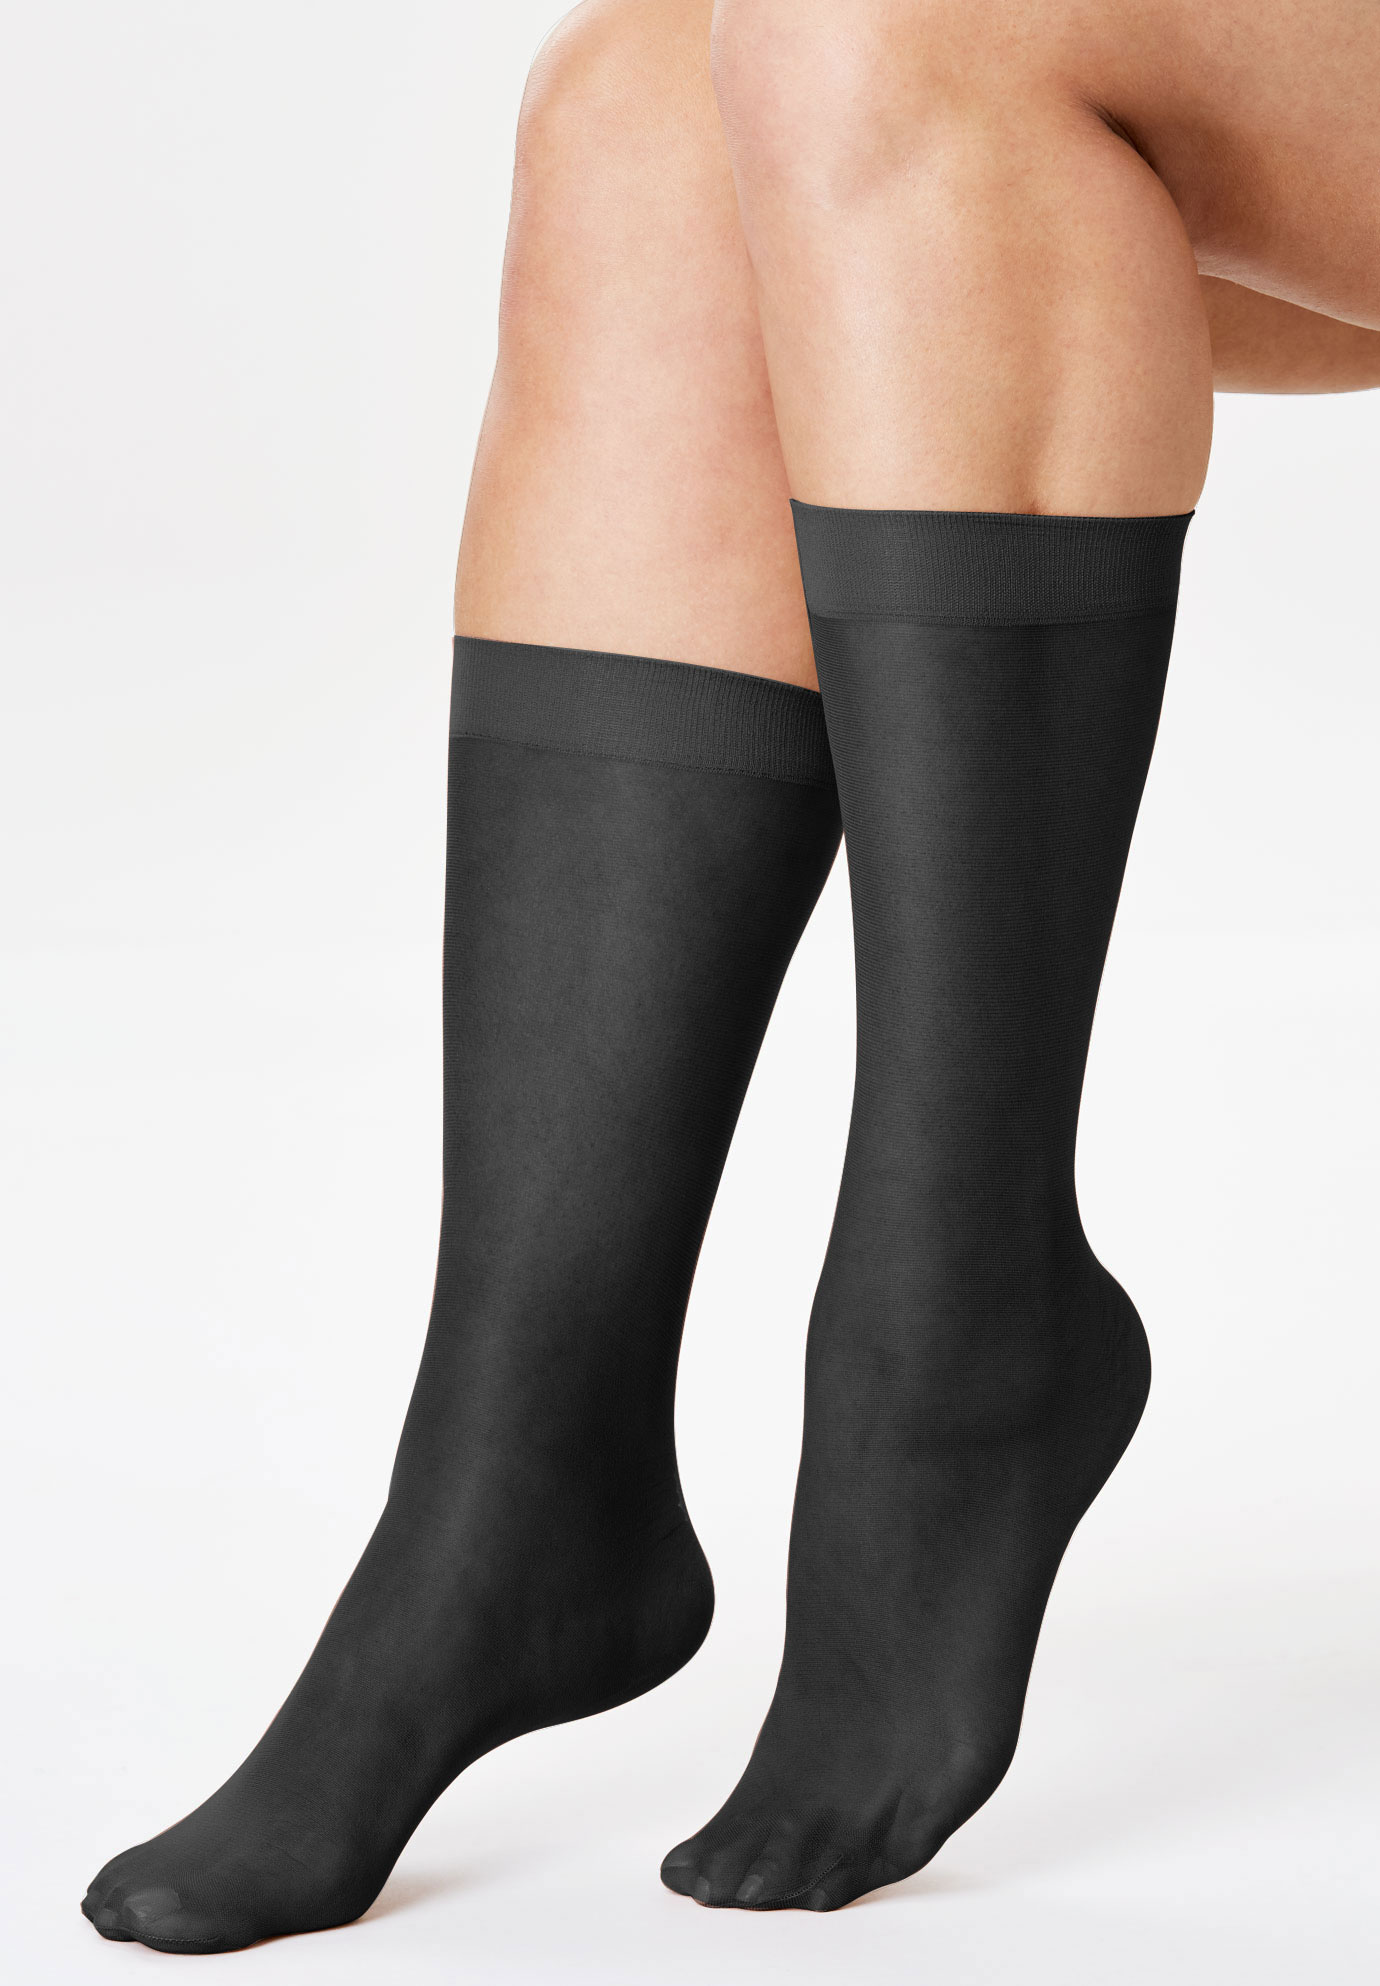 3-Pack Knee-High Compression Socks by Comfort Choice®,